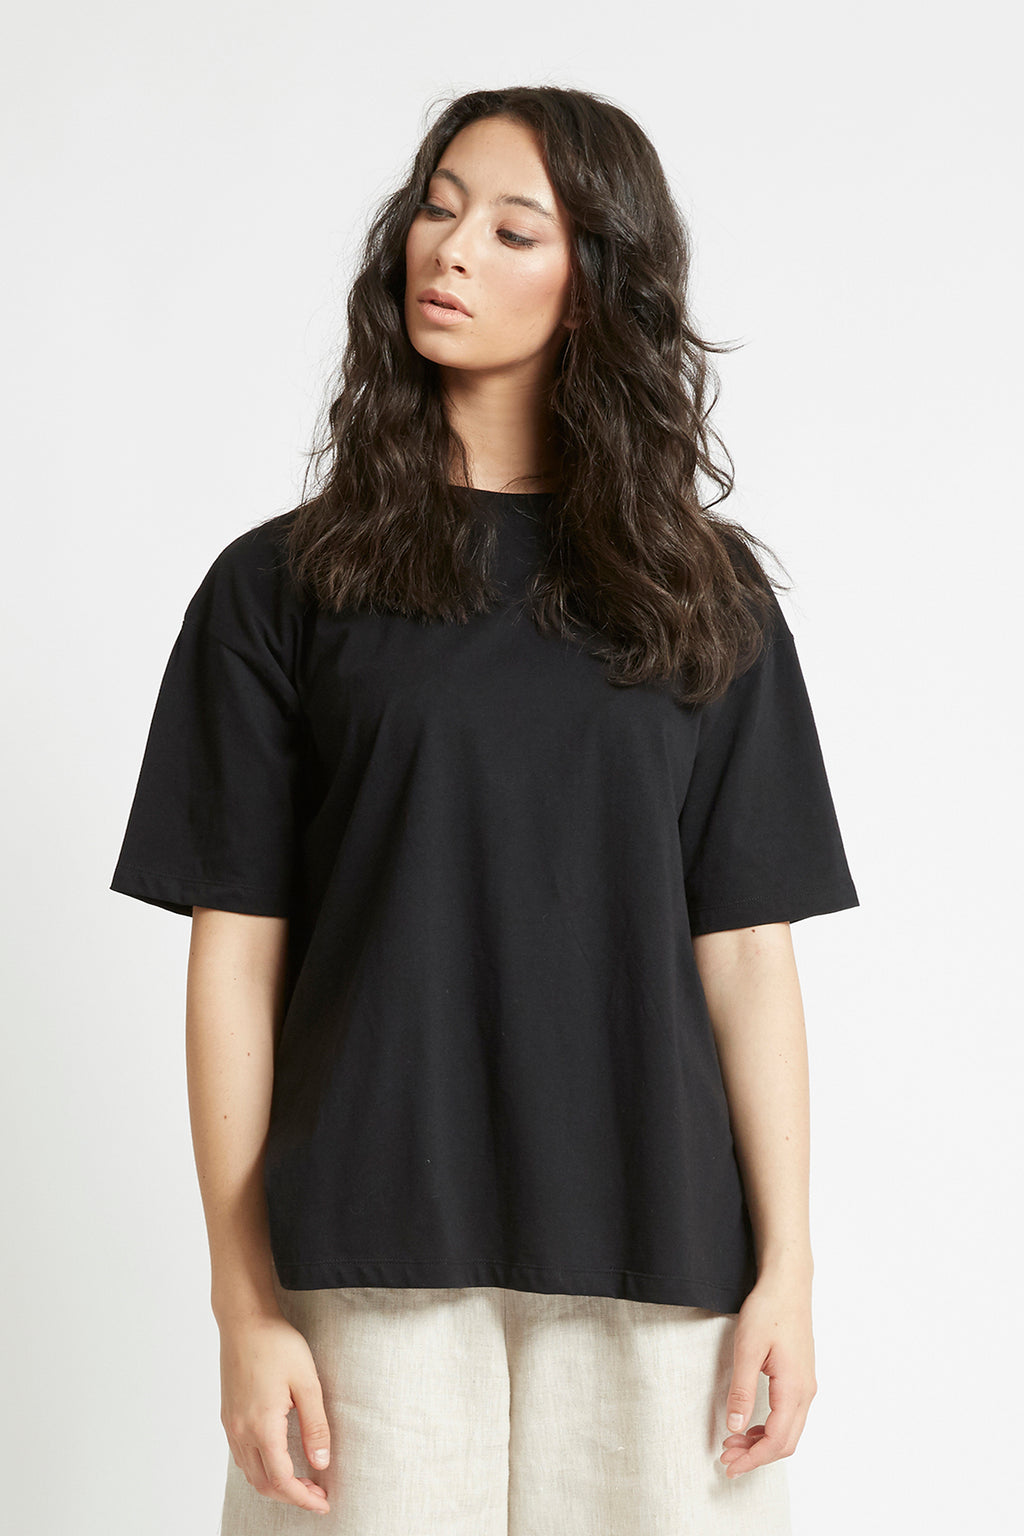 Black Organic Cotton Boyfriend T-Shirt Shirts + tops The Fashion Advocate ethical Australian fashion designer boutique Melbourne sustainable clothes